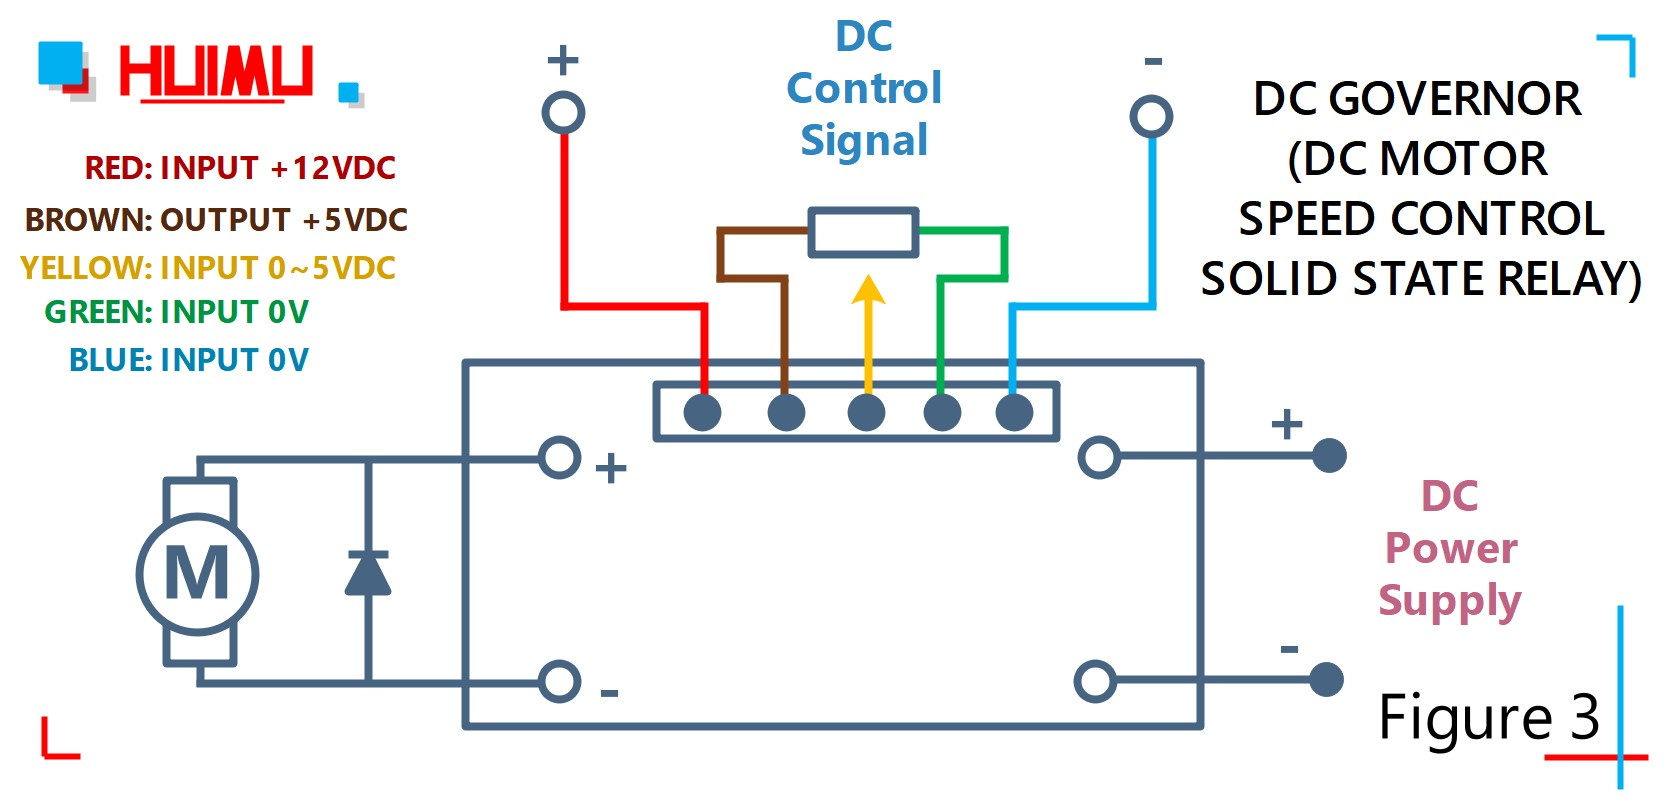 How to wire MGR mager DC electric motor speed control solid state relay? More detail via www.@huimultd.com